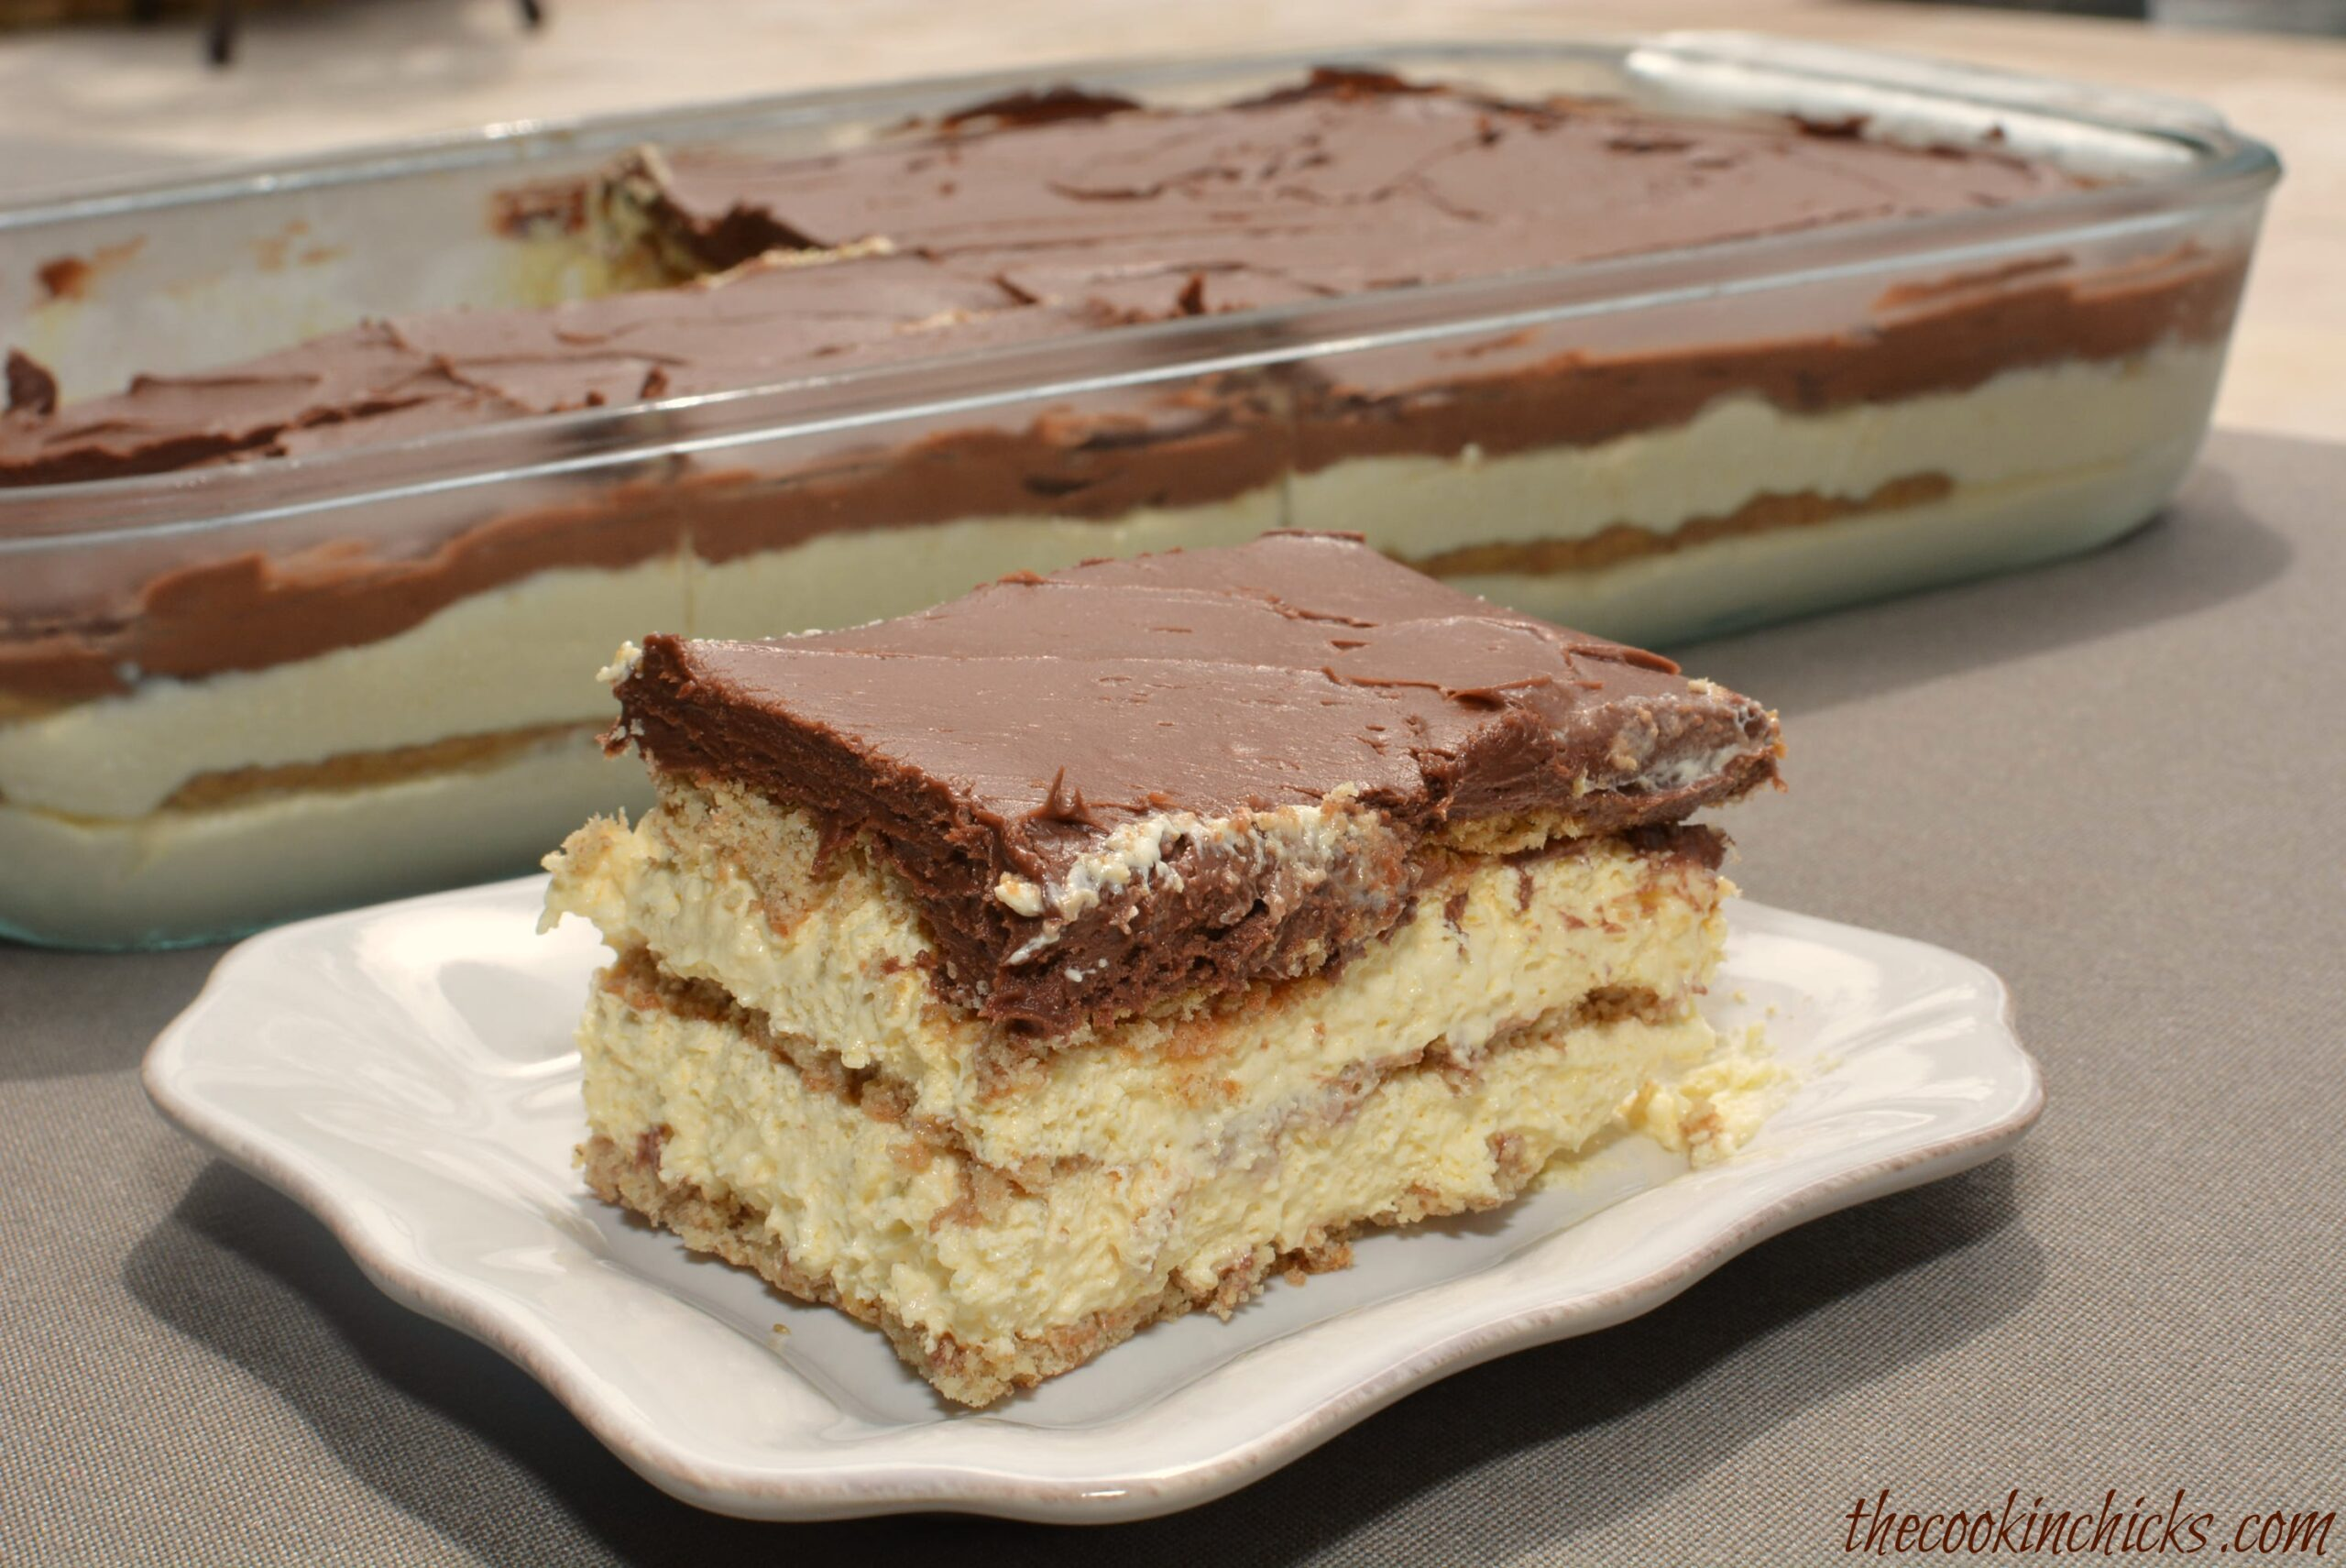 Chocolate Eclair Cake | The Cookin Chicks